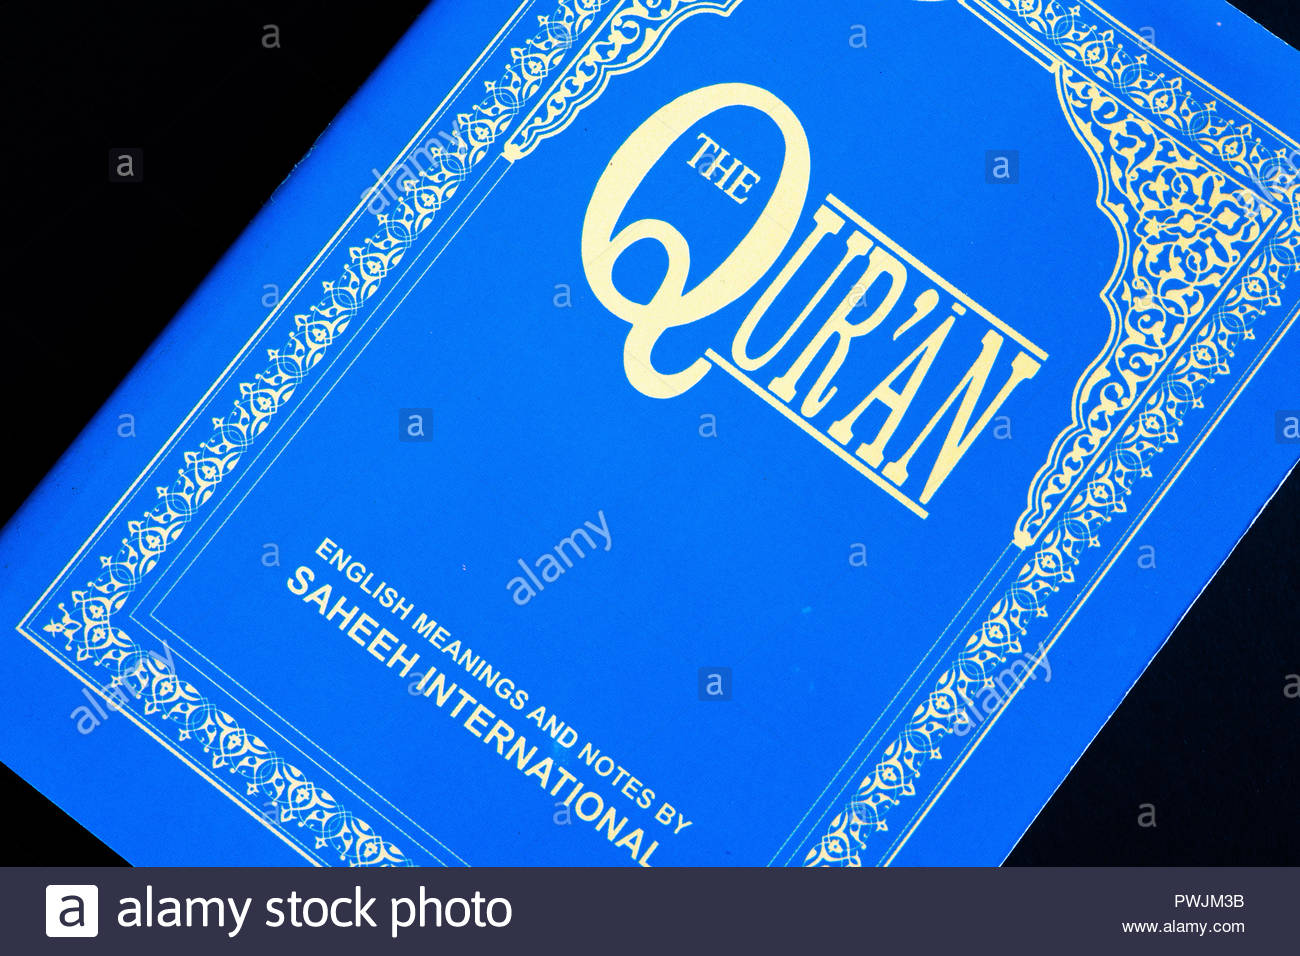 Quran Cover Stock Photos & Quran Cover Stock Images - Alamy